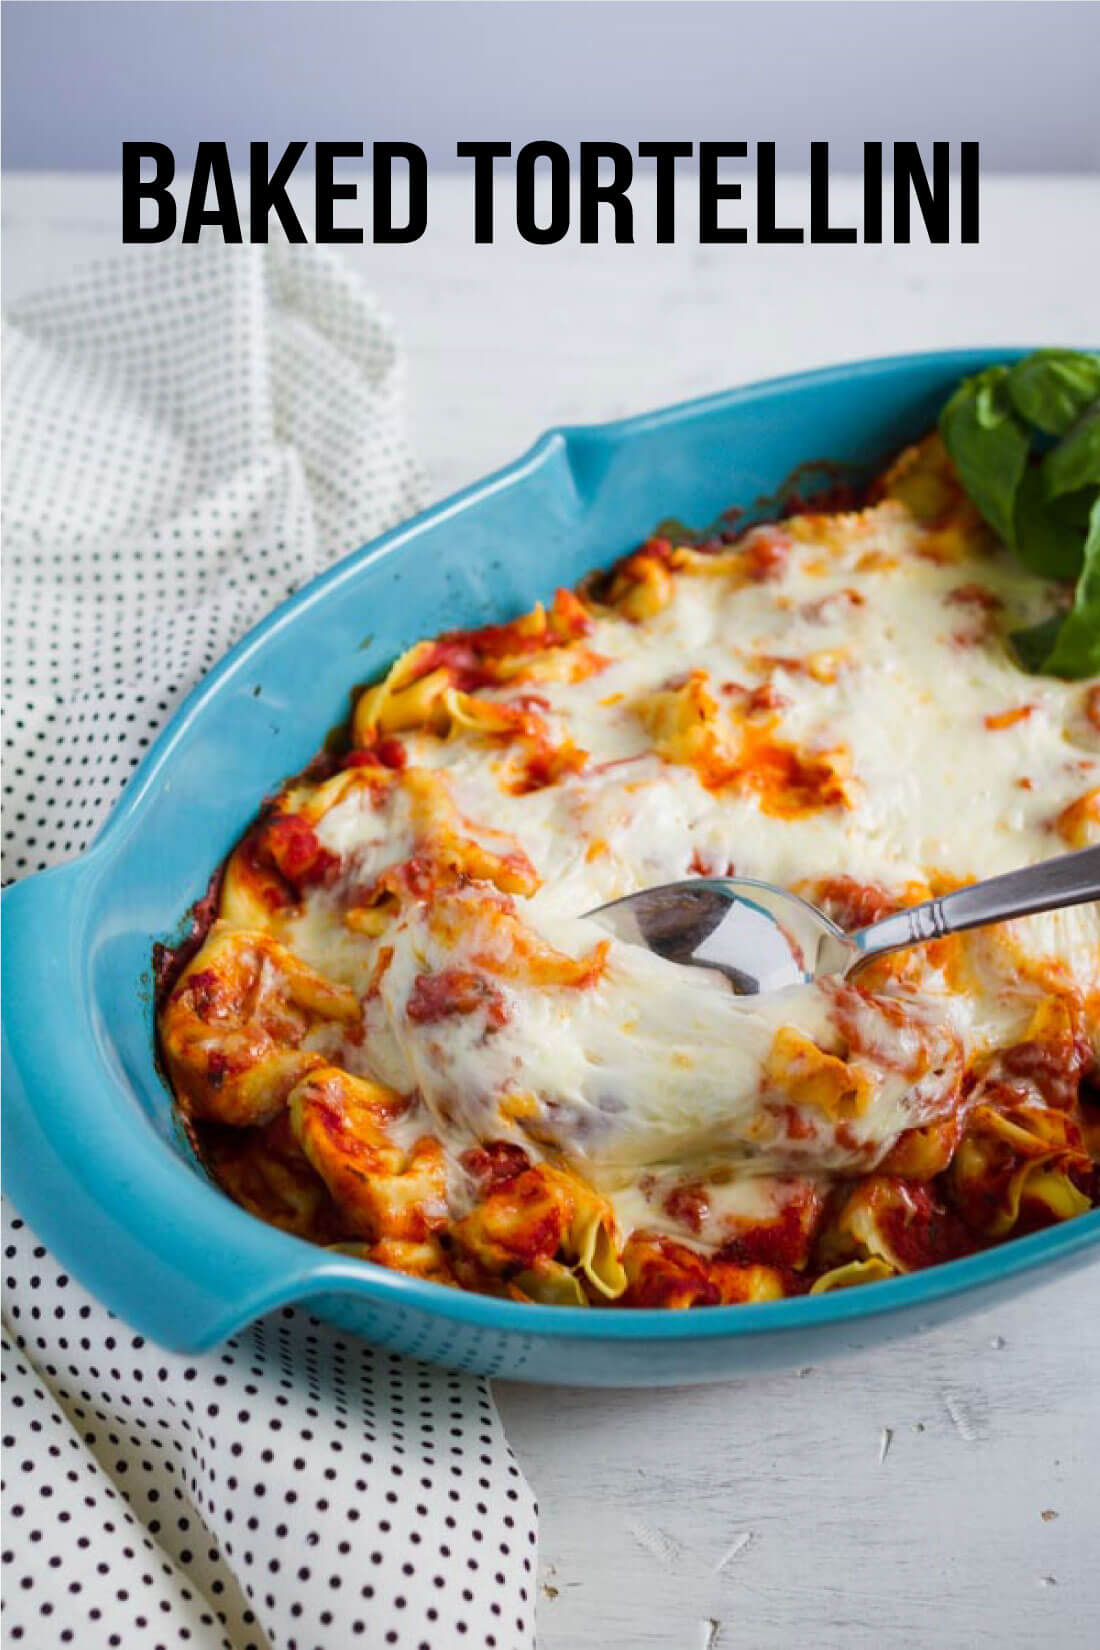 Super simple but tasty Baked Tortellini - if your family likes pasta, they will love this ooey gooey main dish!